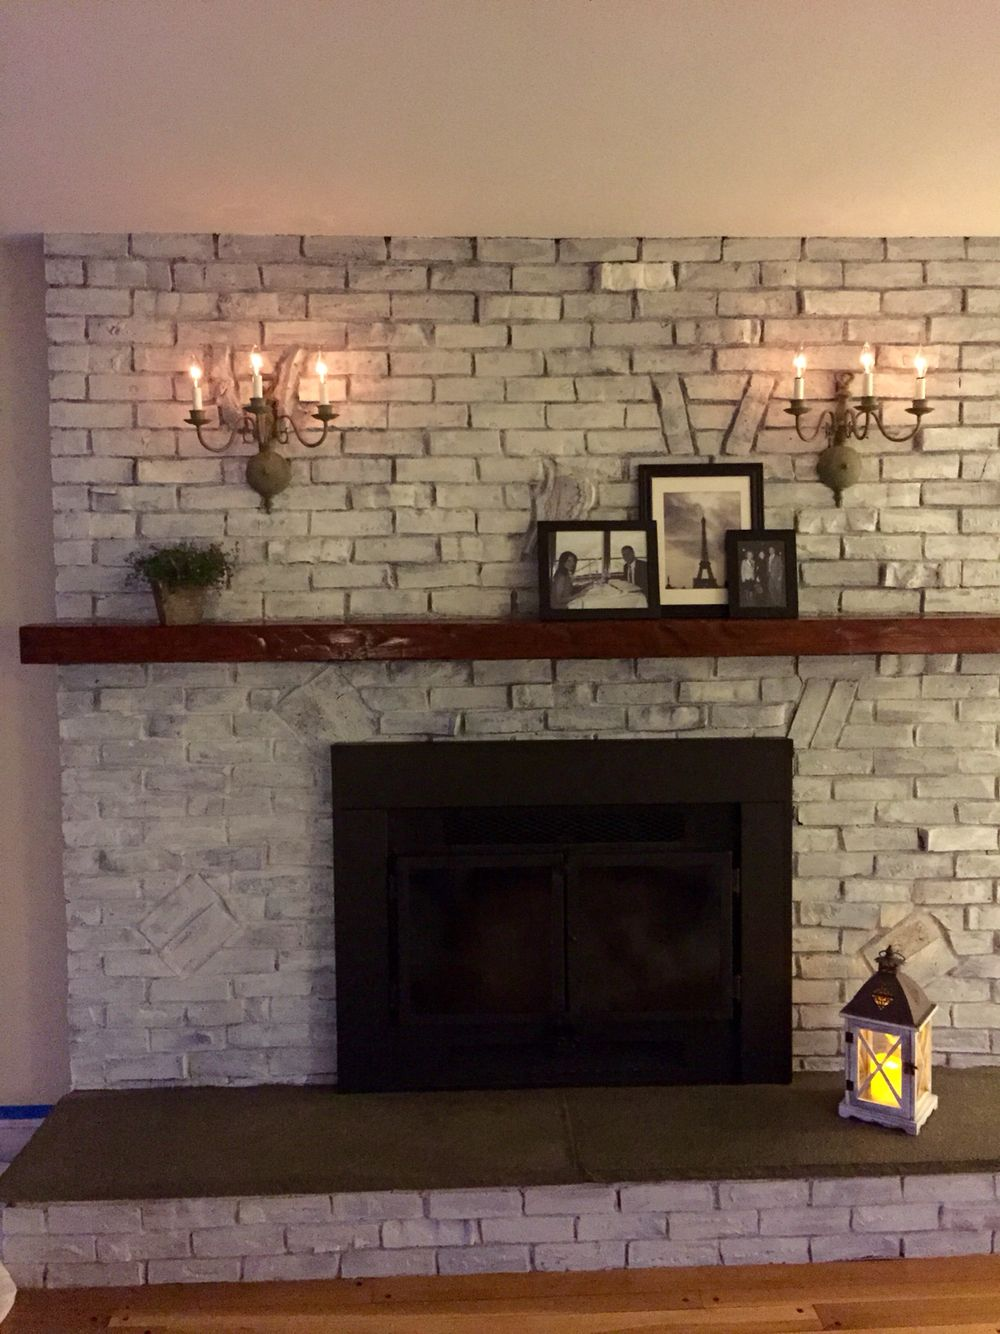 Final Product White Wash Brick Chalk Painted Sconces And Spray Painted Fireplace For Uniform Look Family Room Paint White Wash Brick Fireplace